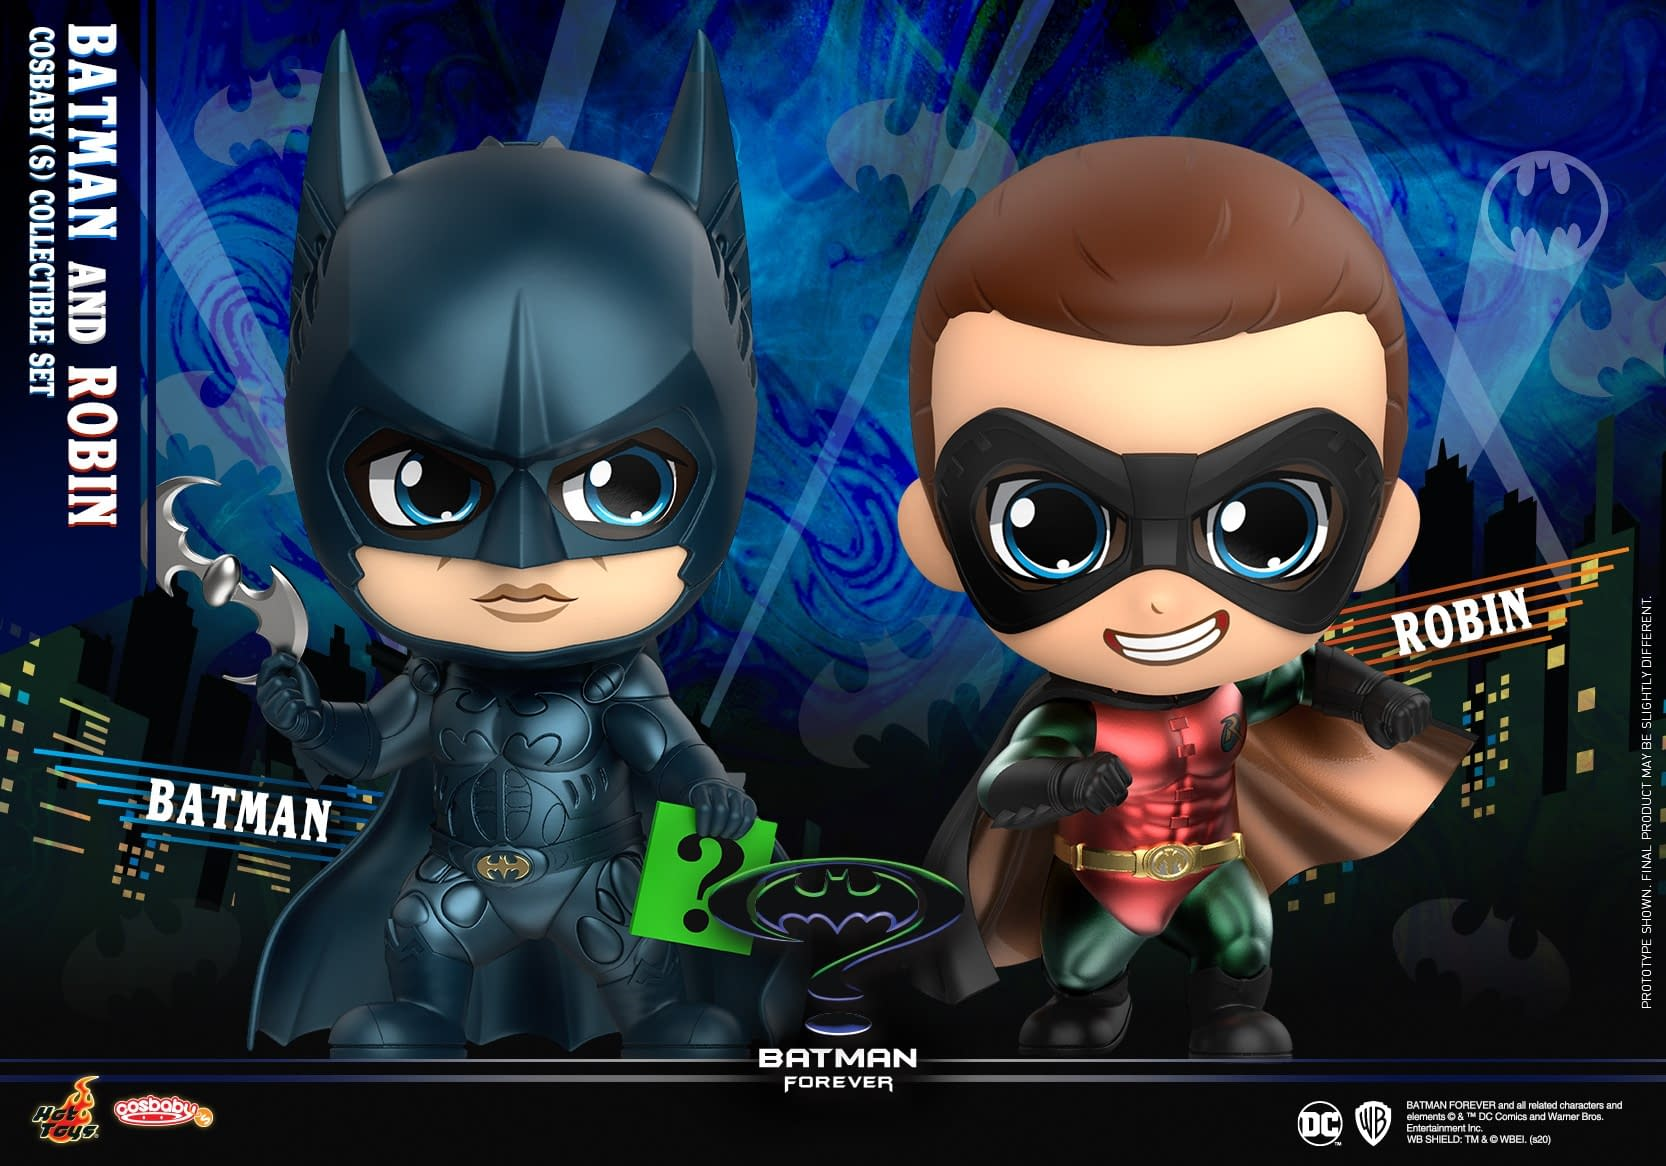 """""""Batman Forever"""" Cosbaby Figures Arrive with Hot Toys"""